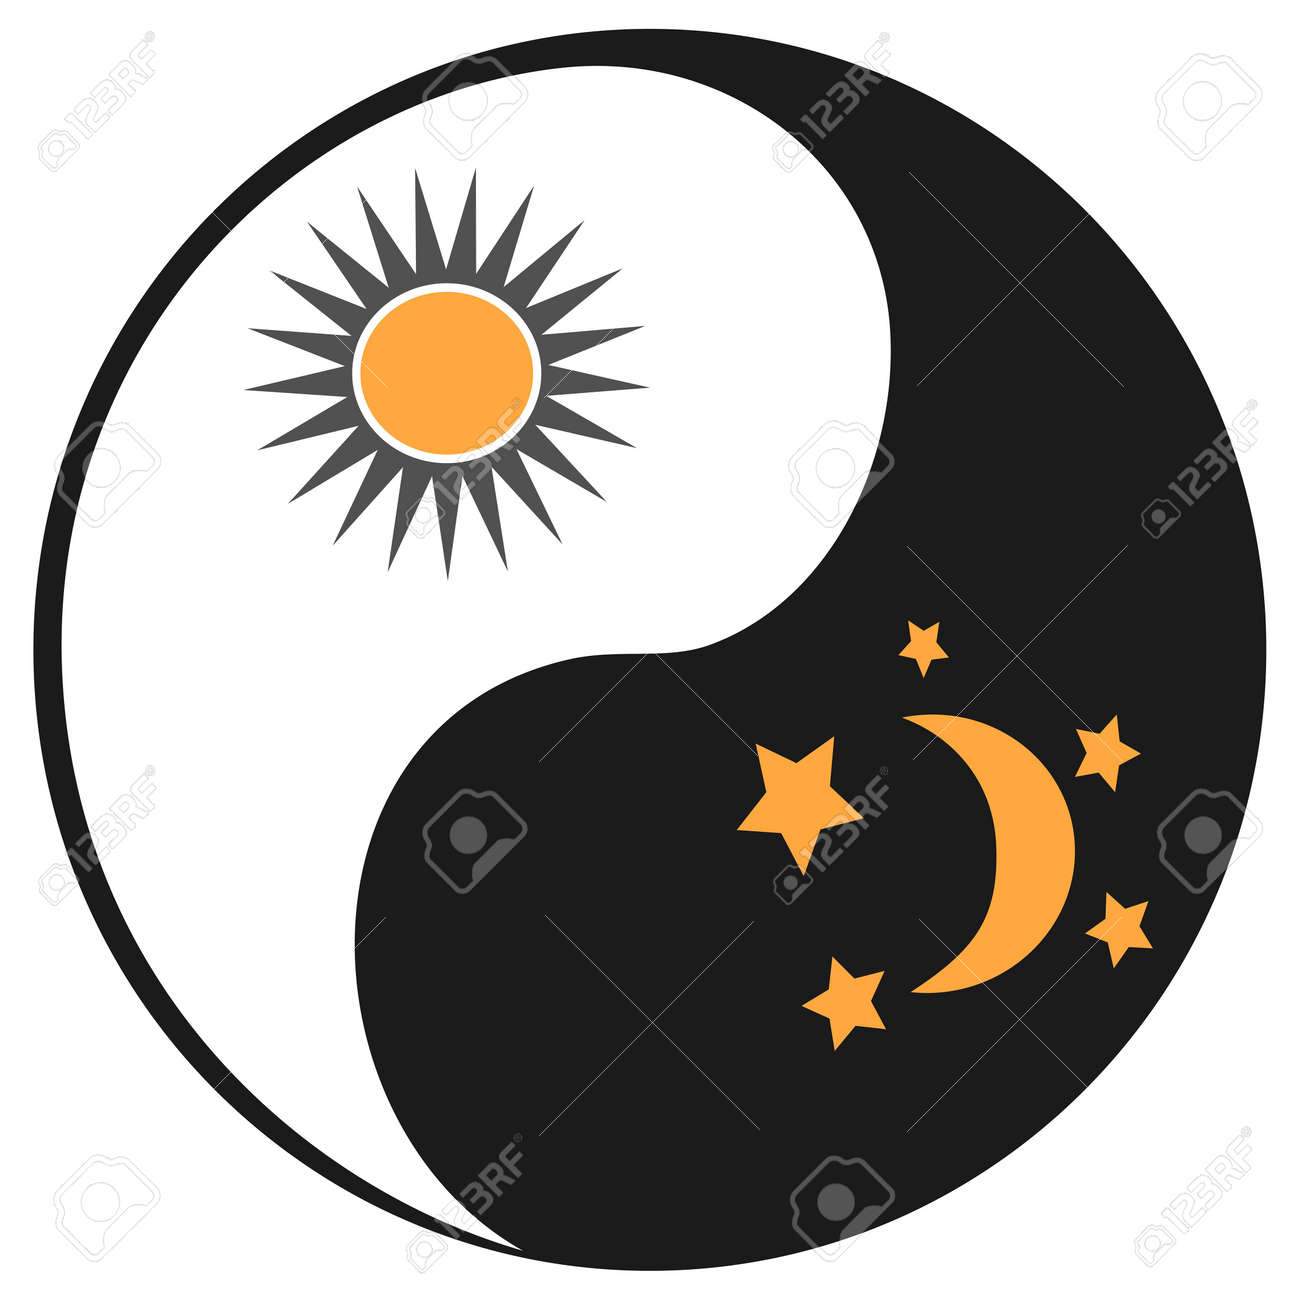 Isolated Sun And Moon In Ying Yang Symbol From White Background